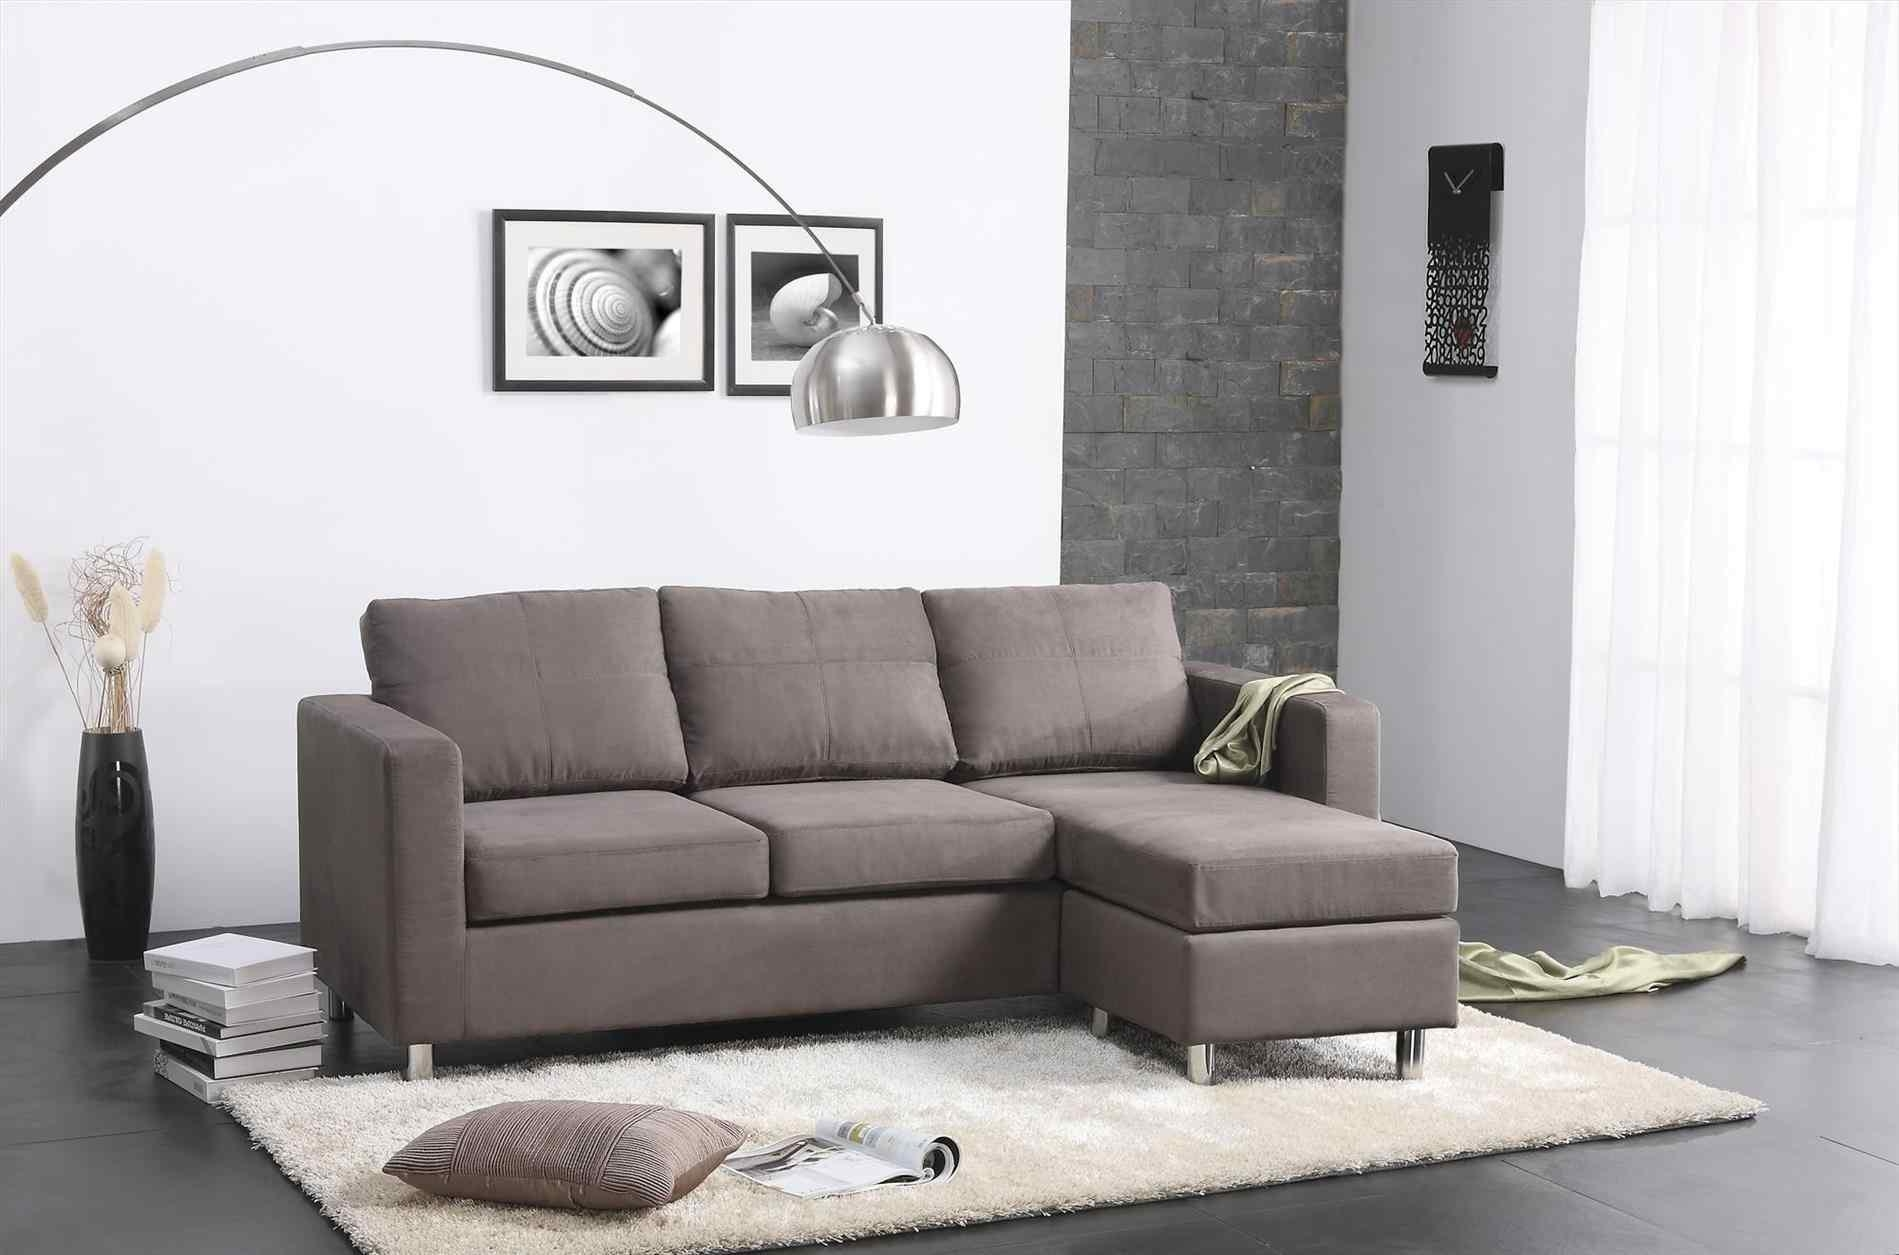 Floor Lamps For Sectional Sofas | Chair And Sofa For Floor Lamp For Sectional Couch (Image 6 of 15)